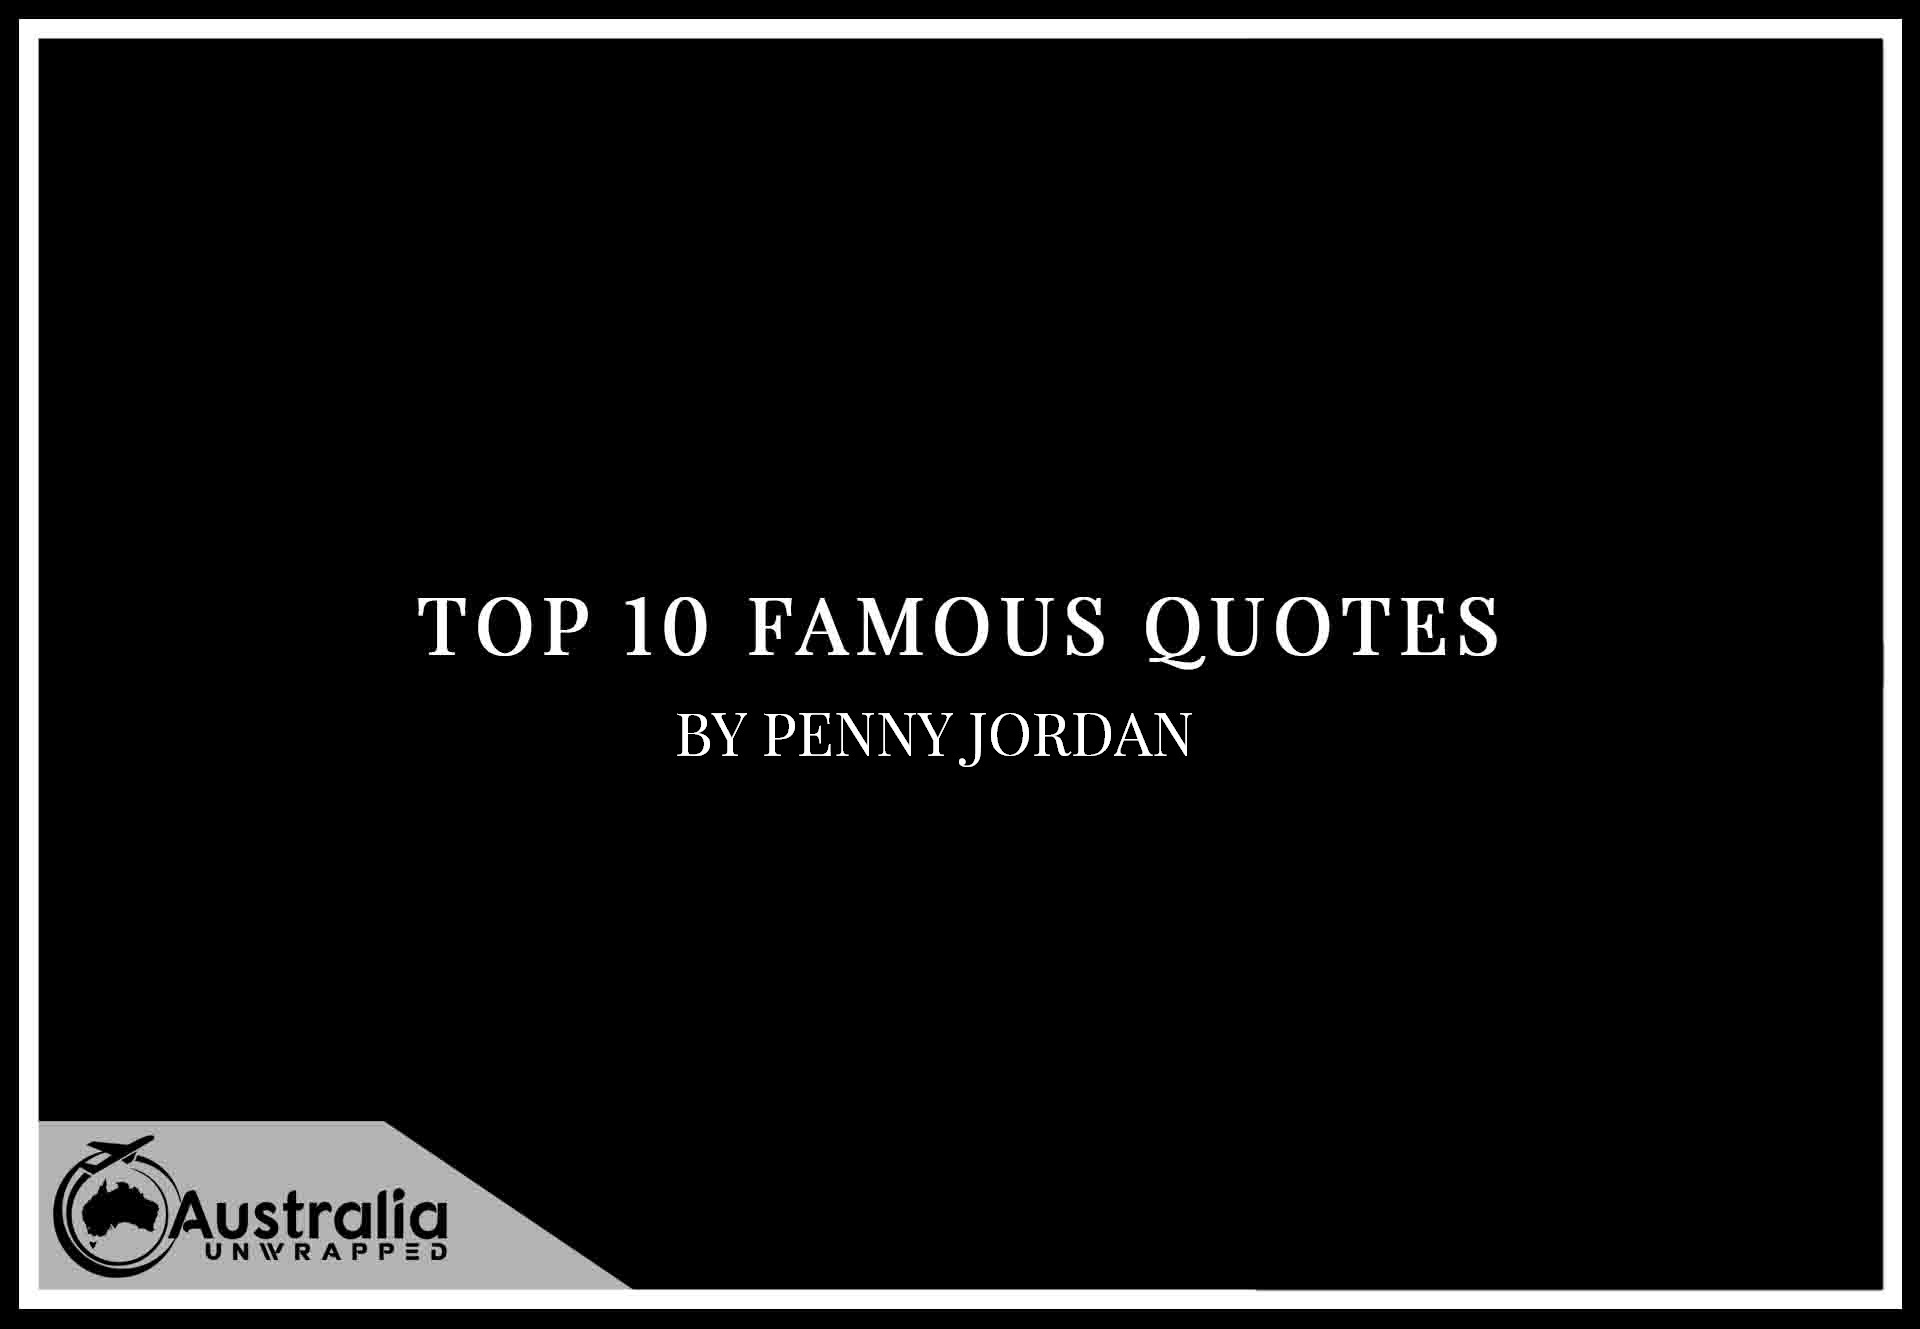 Top 10 Famous Quotes by Author Penny Jordan